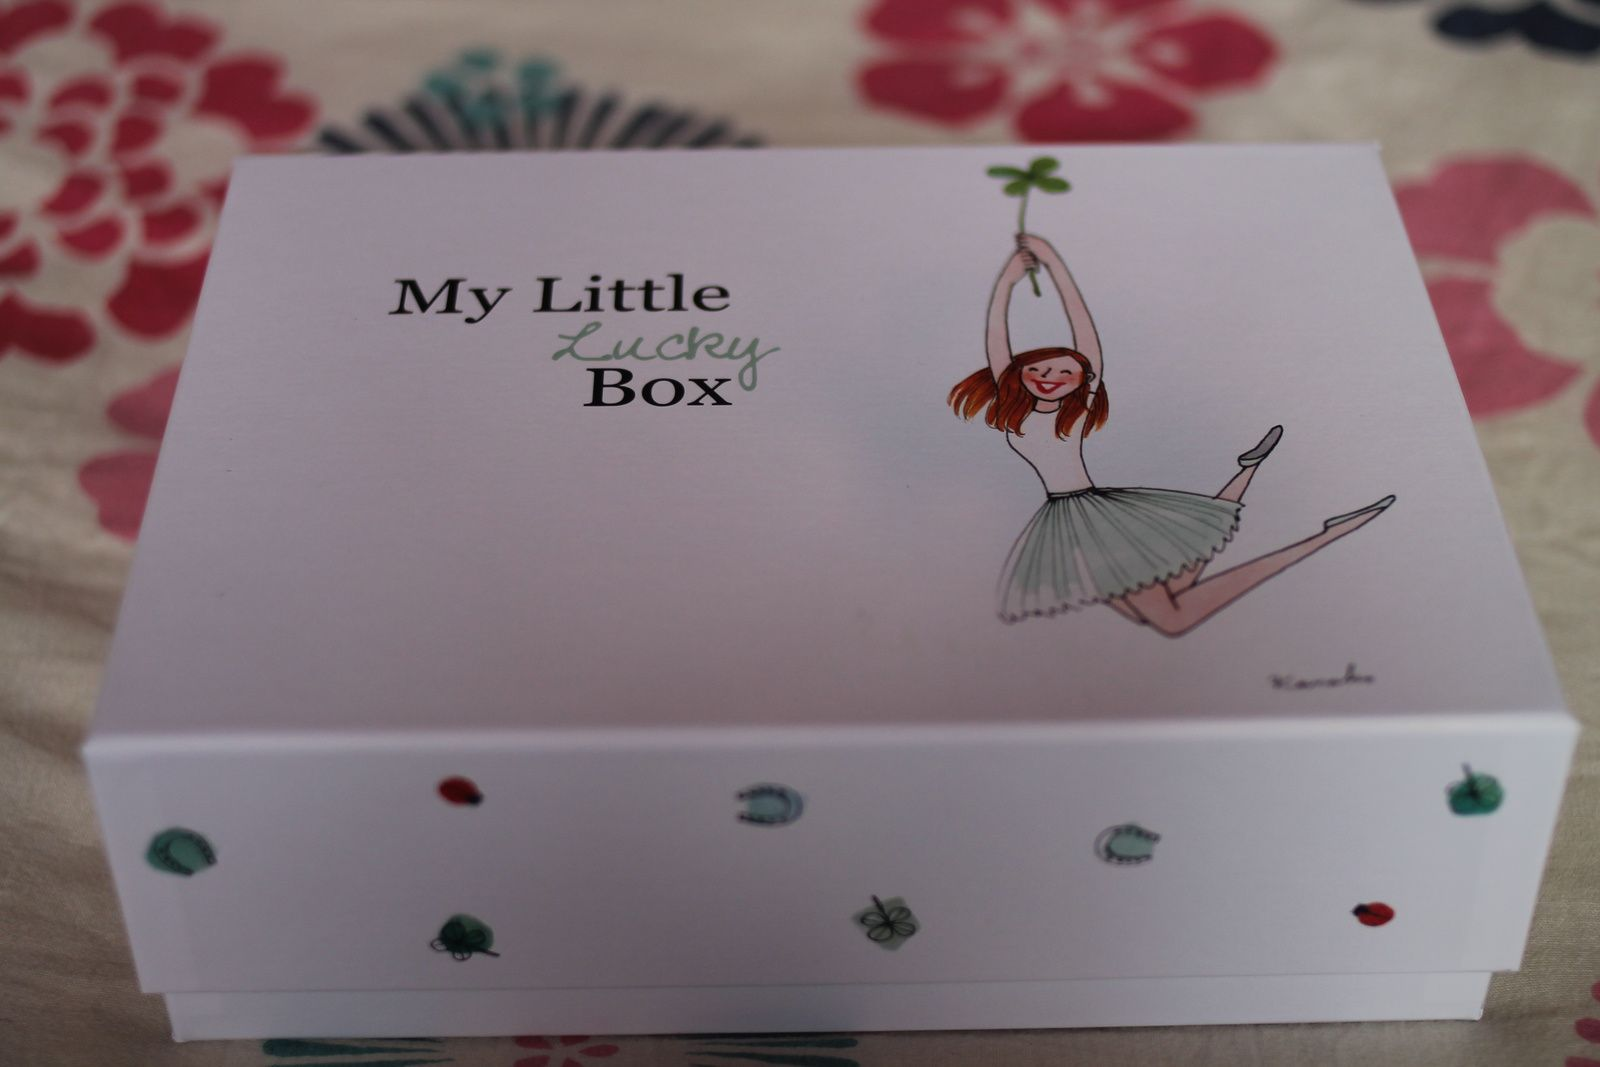 My Little Lucky Box...